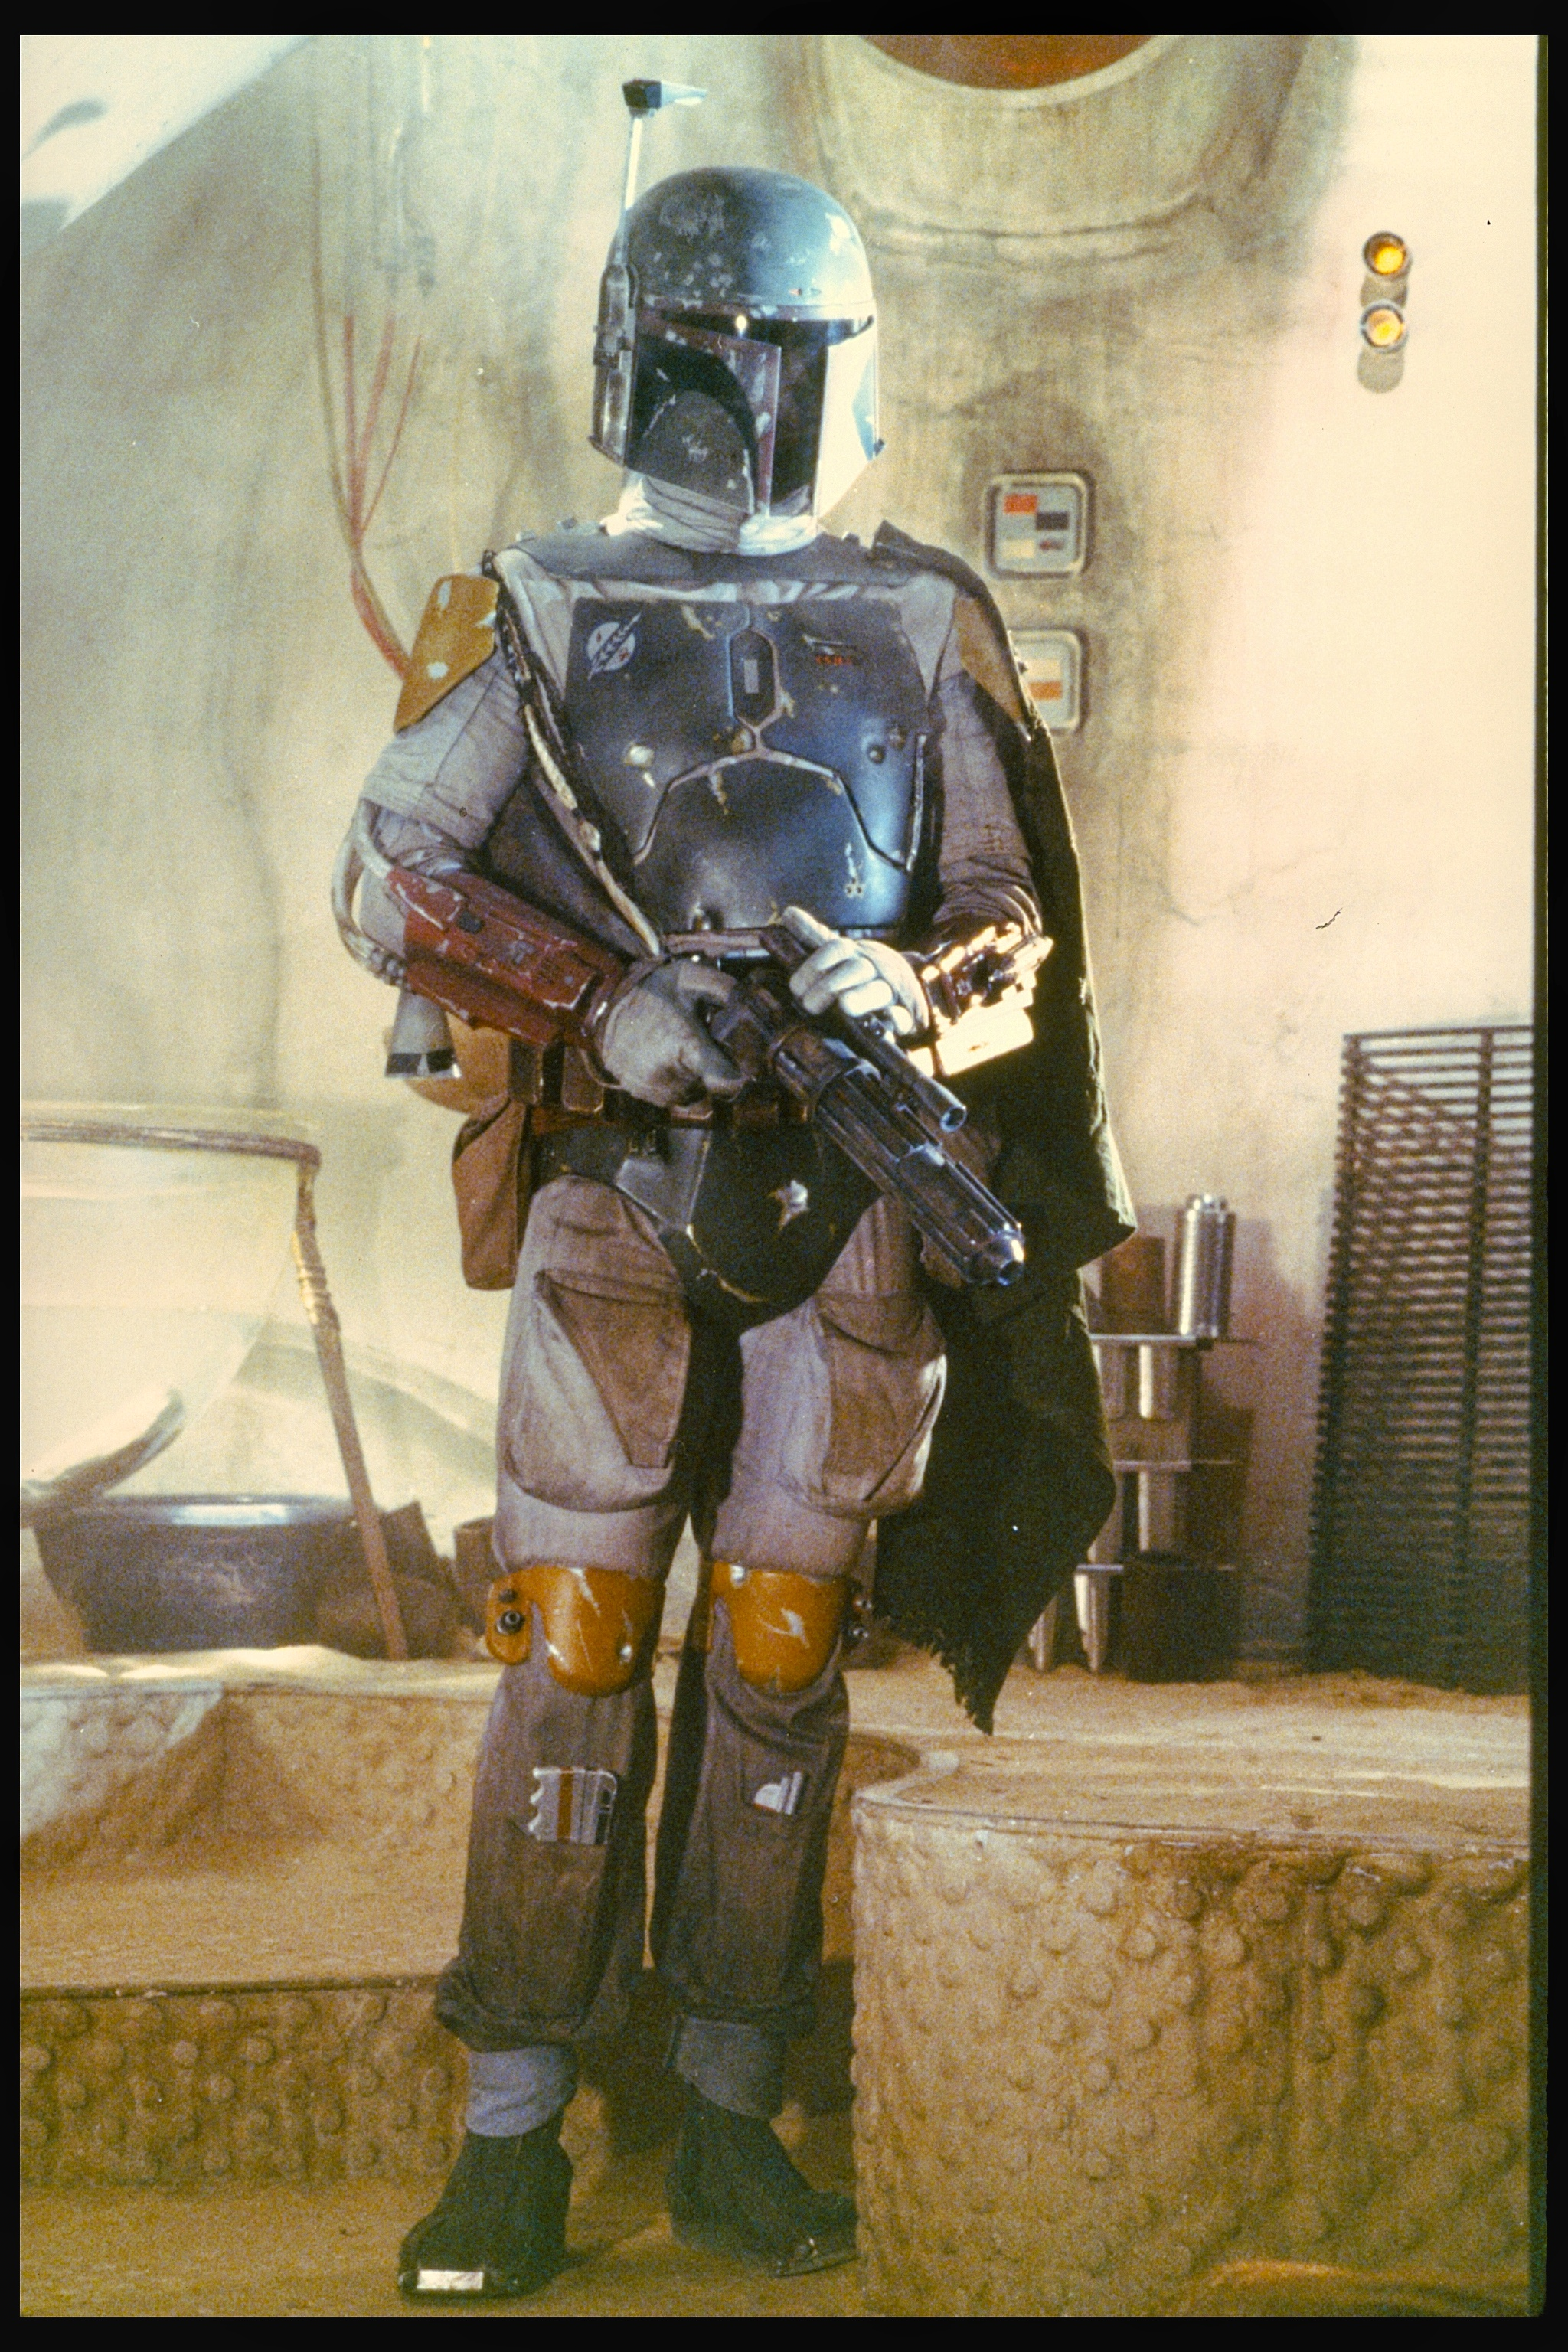 boba-fett-costume-return-of-the-jedi-jabba-02-jpg-01.jpeg